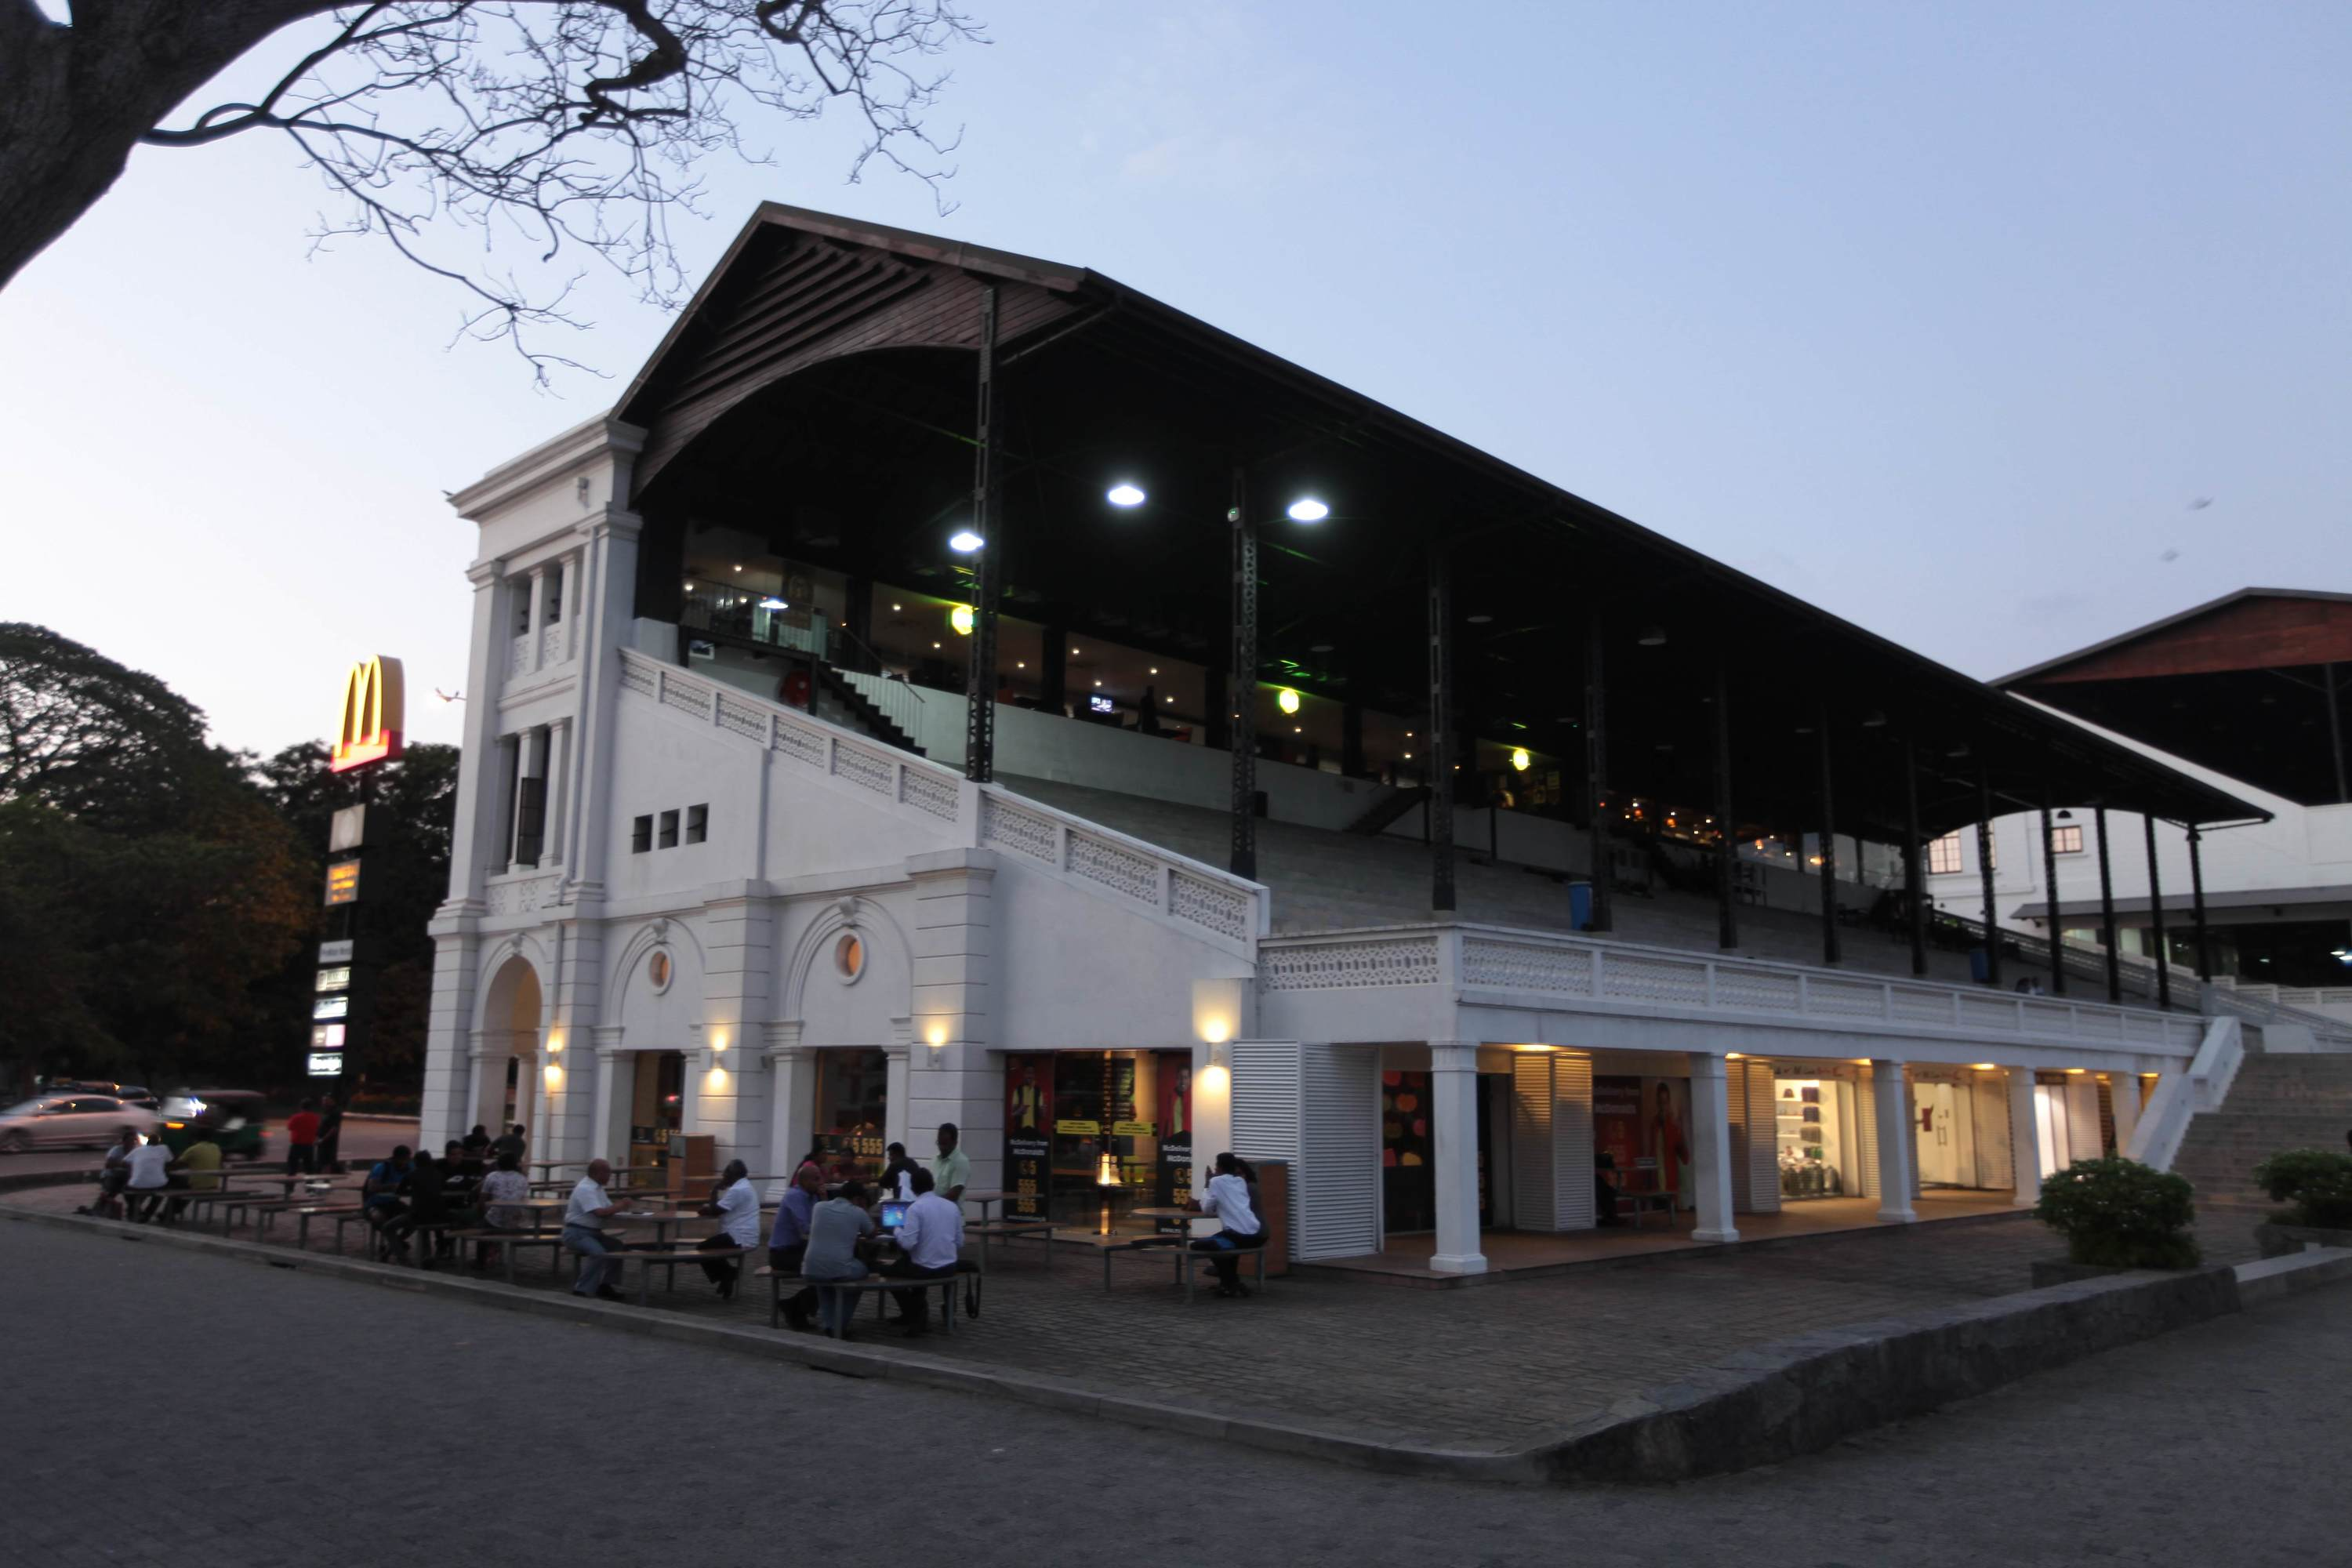 The Racecourse in Colombo 7